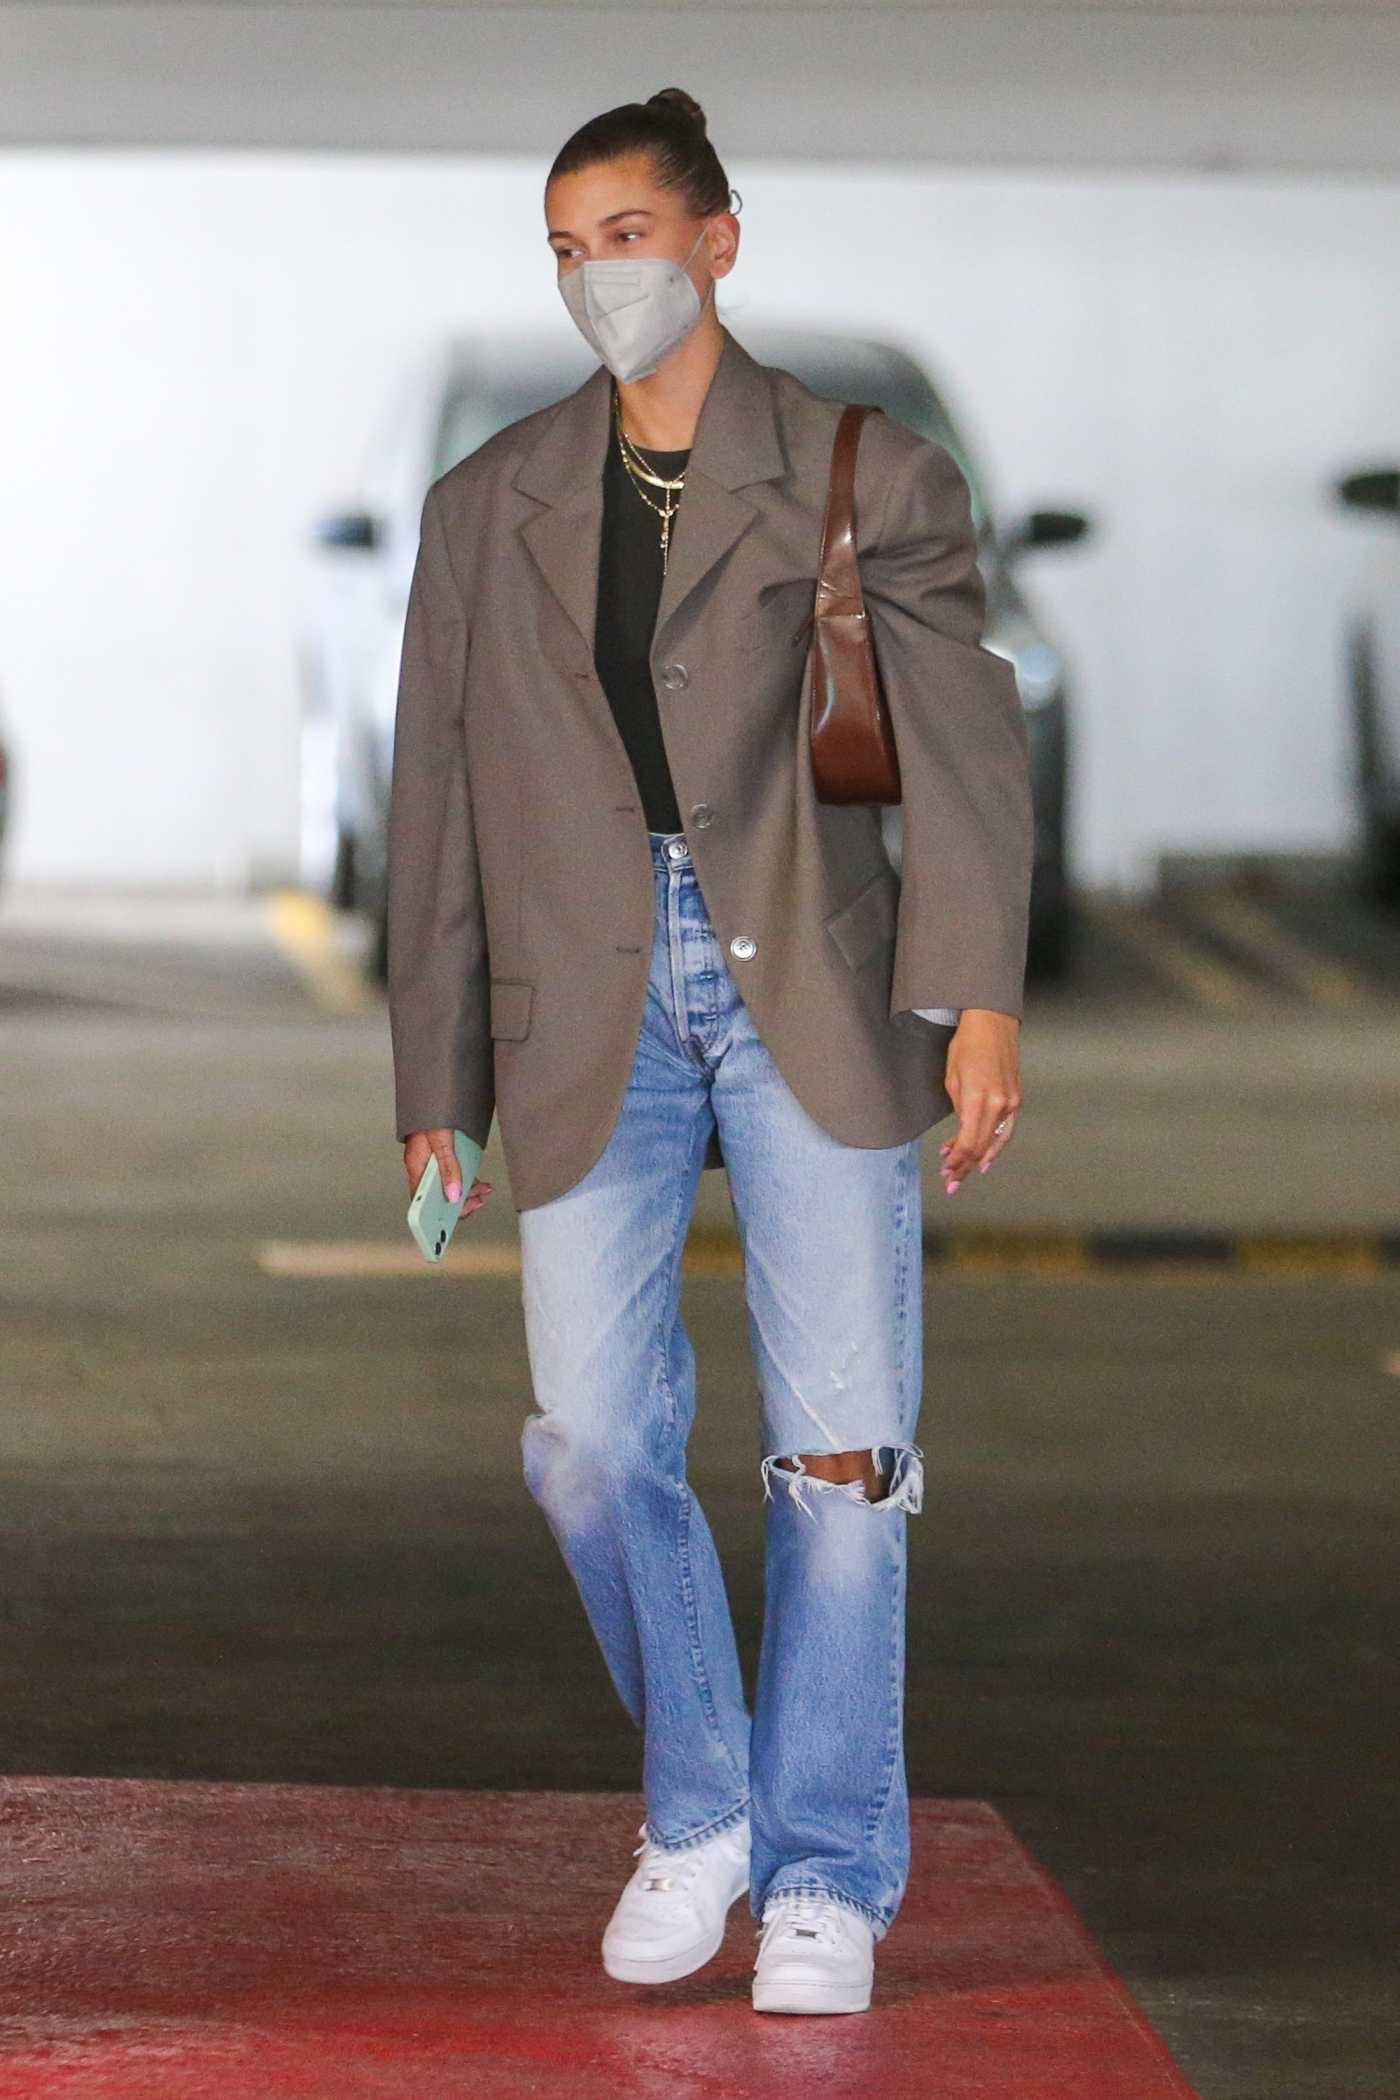 Hailey Baldwin in a Blue Ripped Jeans Arrives at a Business Building Ahead of a Meeting in Beverly Hills 06/16/2021